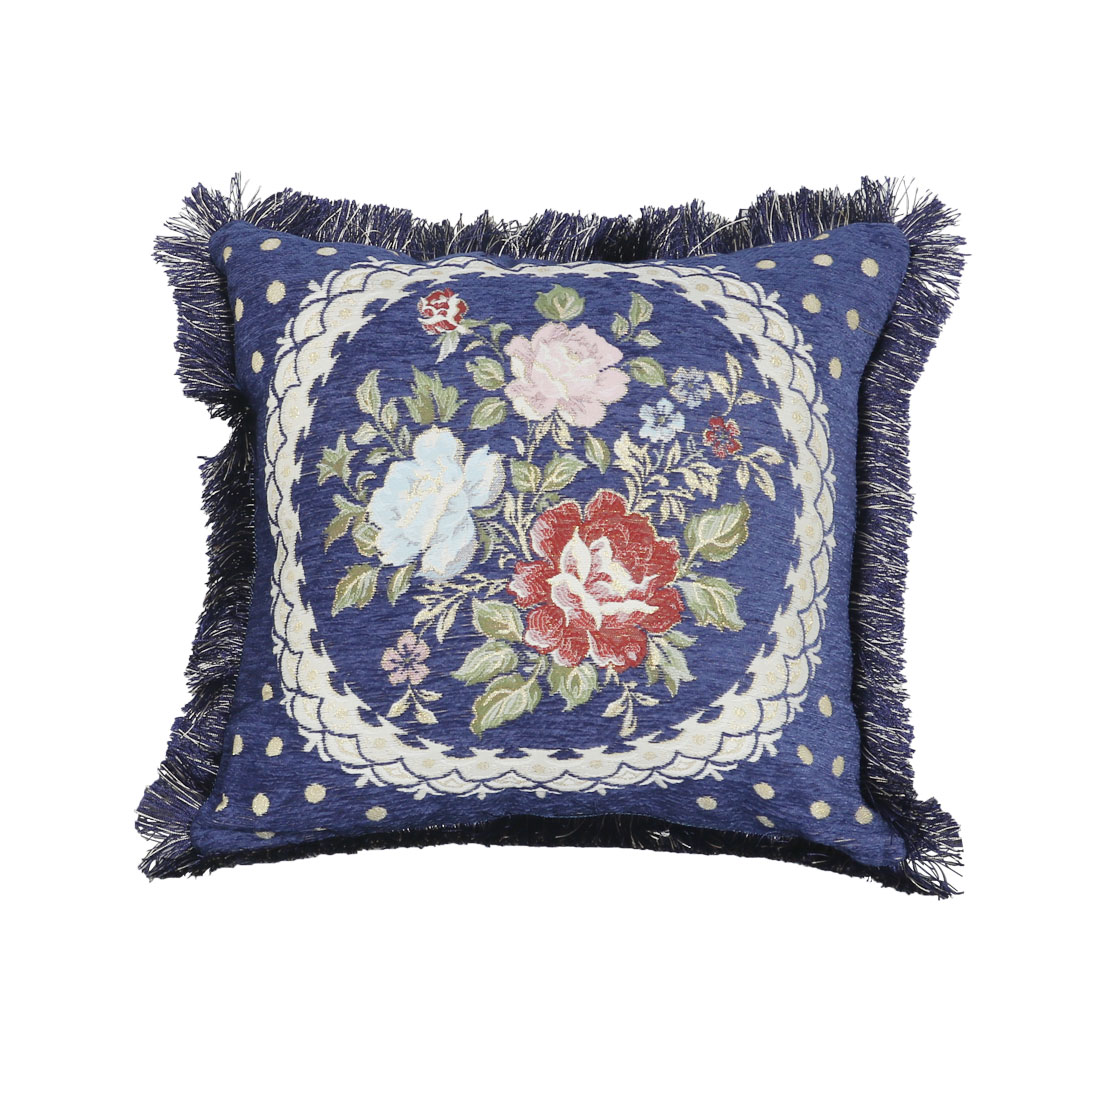 Oriental Flowers Pattern Sofa Bed Pillow Cover w/ Fringe